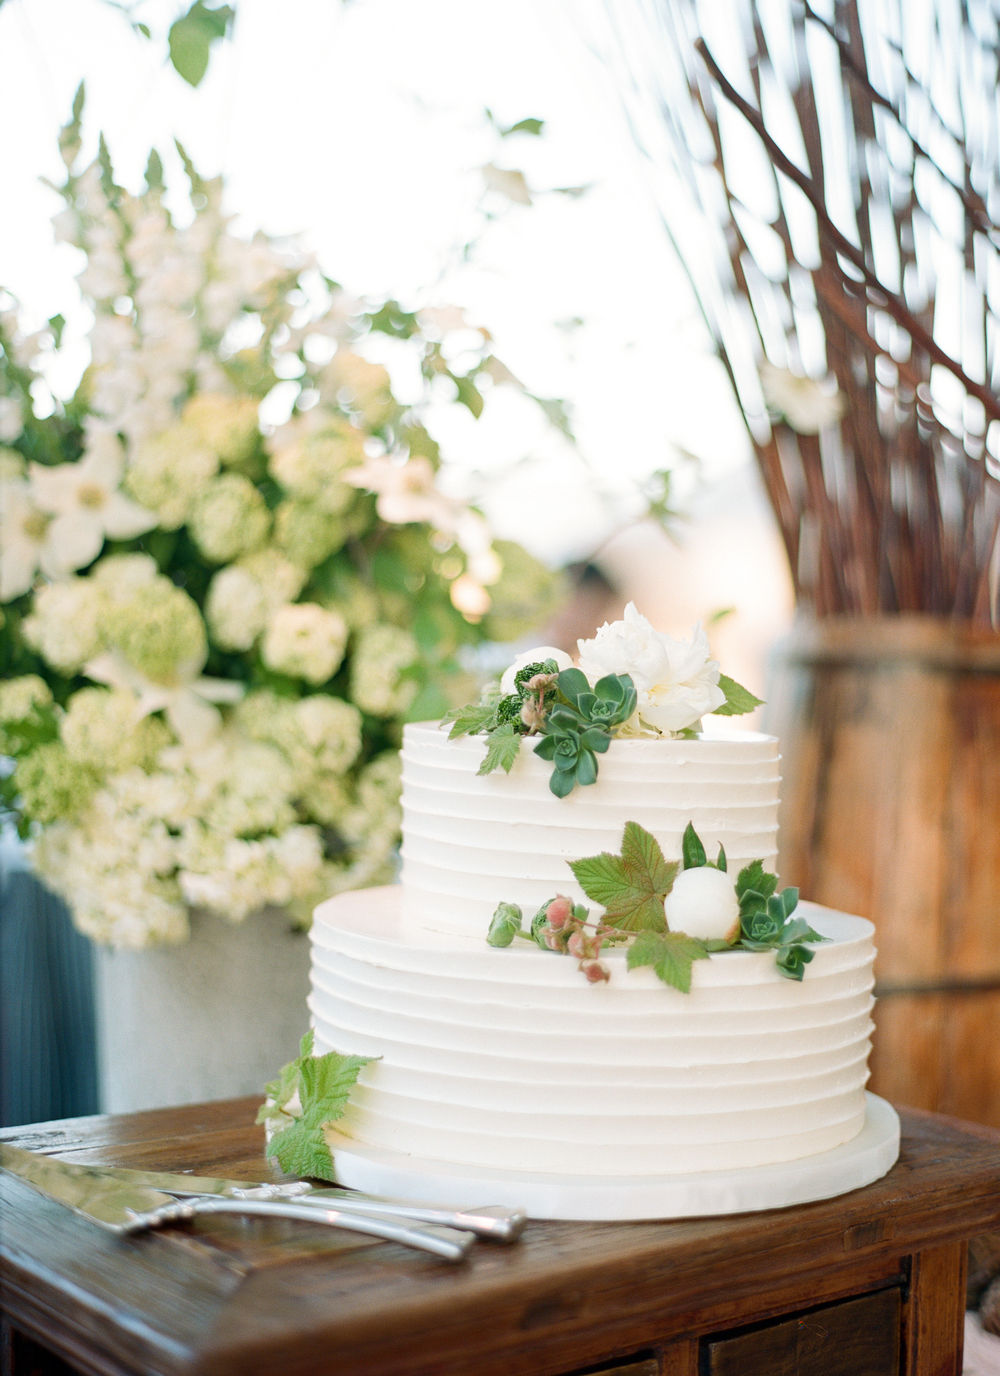 Sylvie-Gil-film-destination-photography-Kunde-winery-Napa-Valley-elegant-shabby-chic-two-tier-cake-succulents